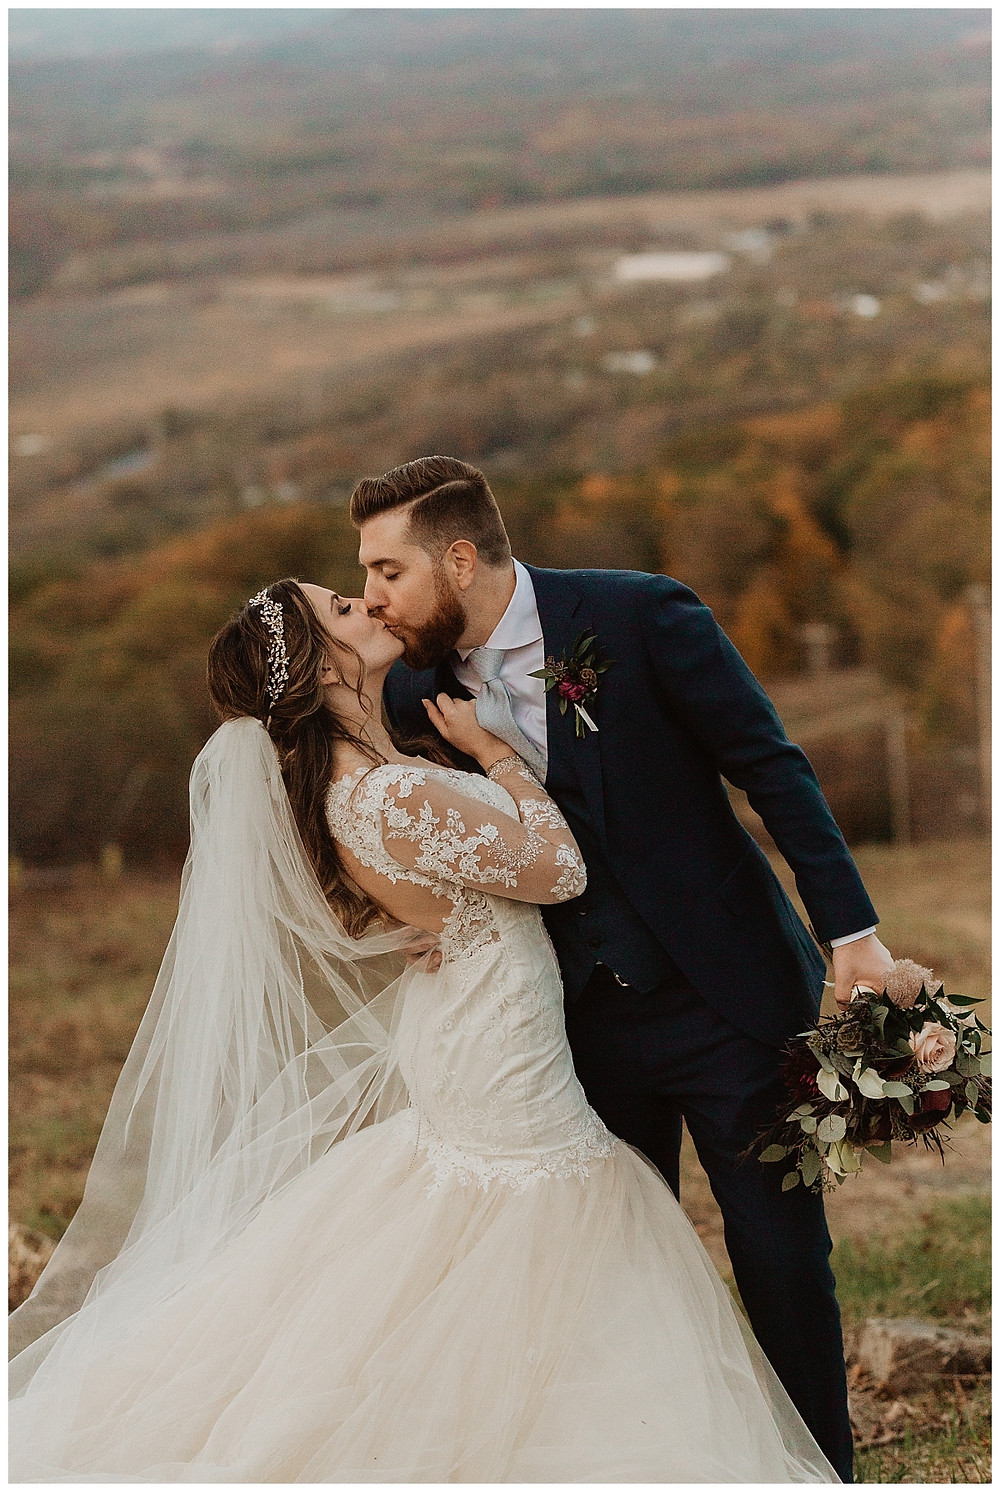 Mountaintop Bride and Groom Portraits